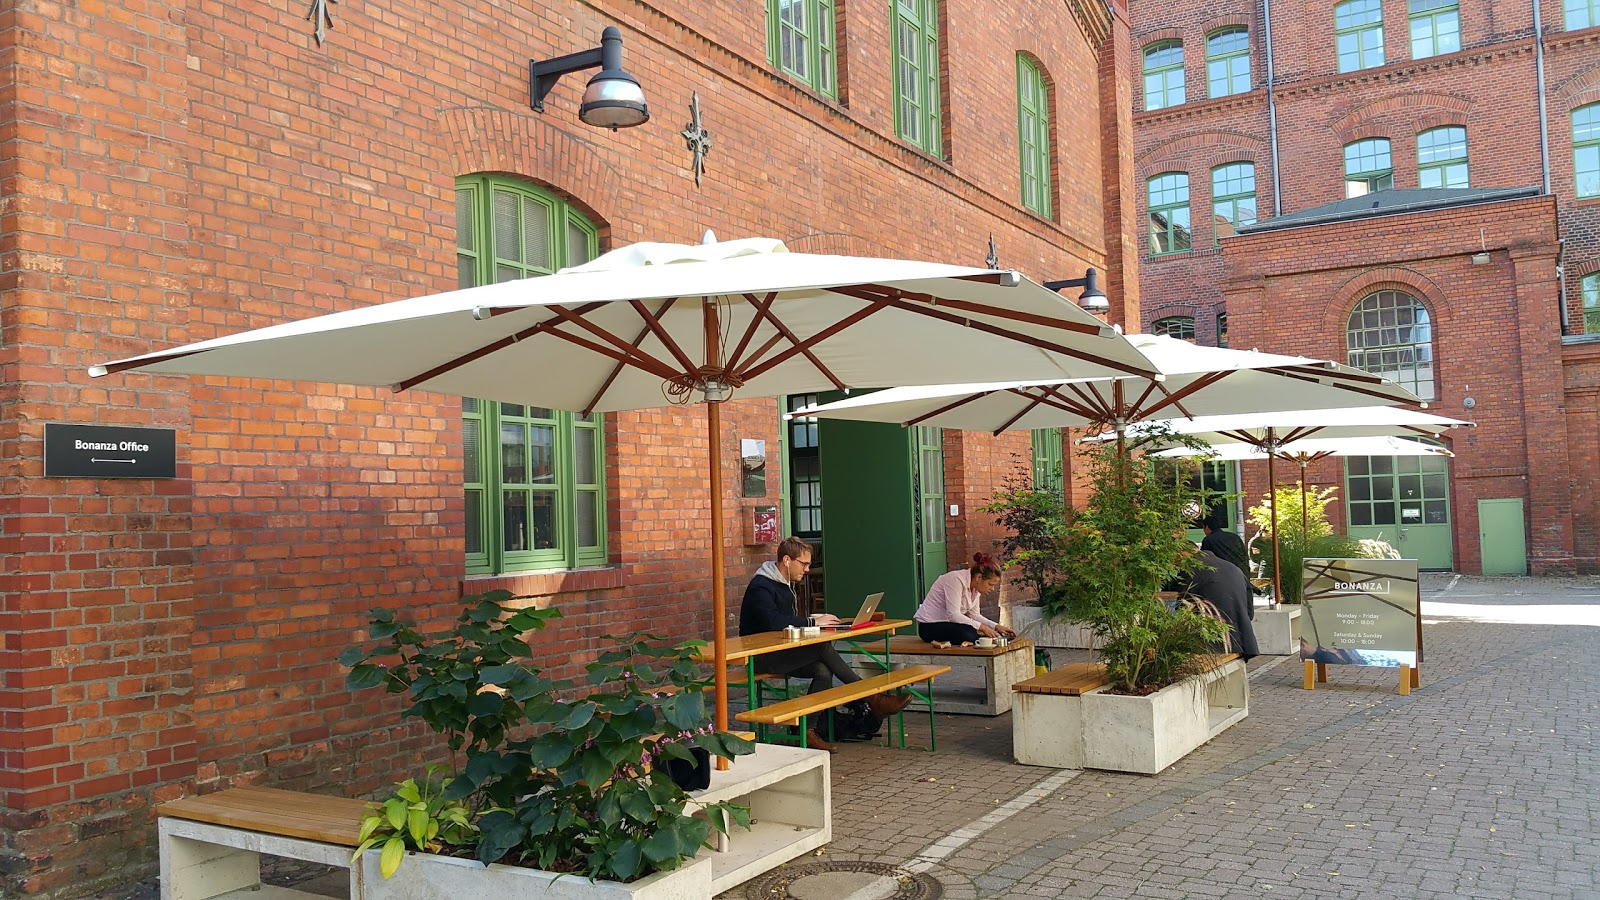 Bonanza Coffee Roasters: A Work-Friendly Place in Berlin